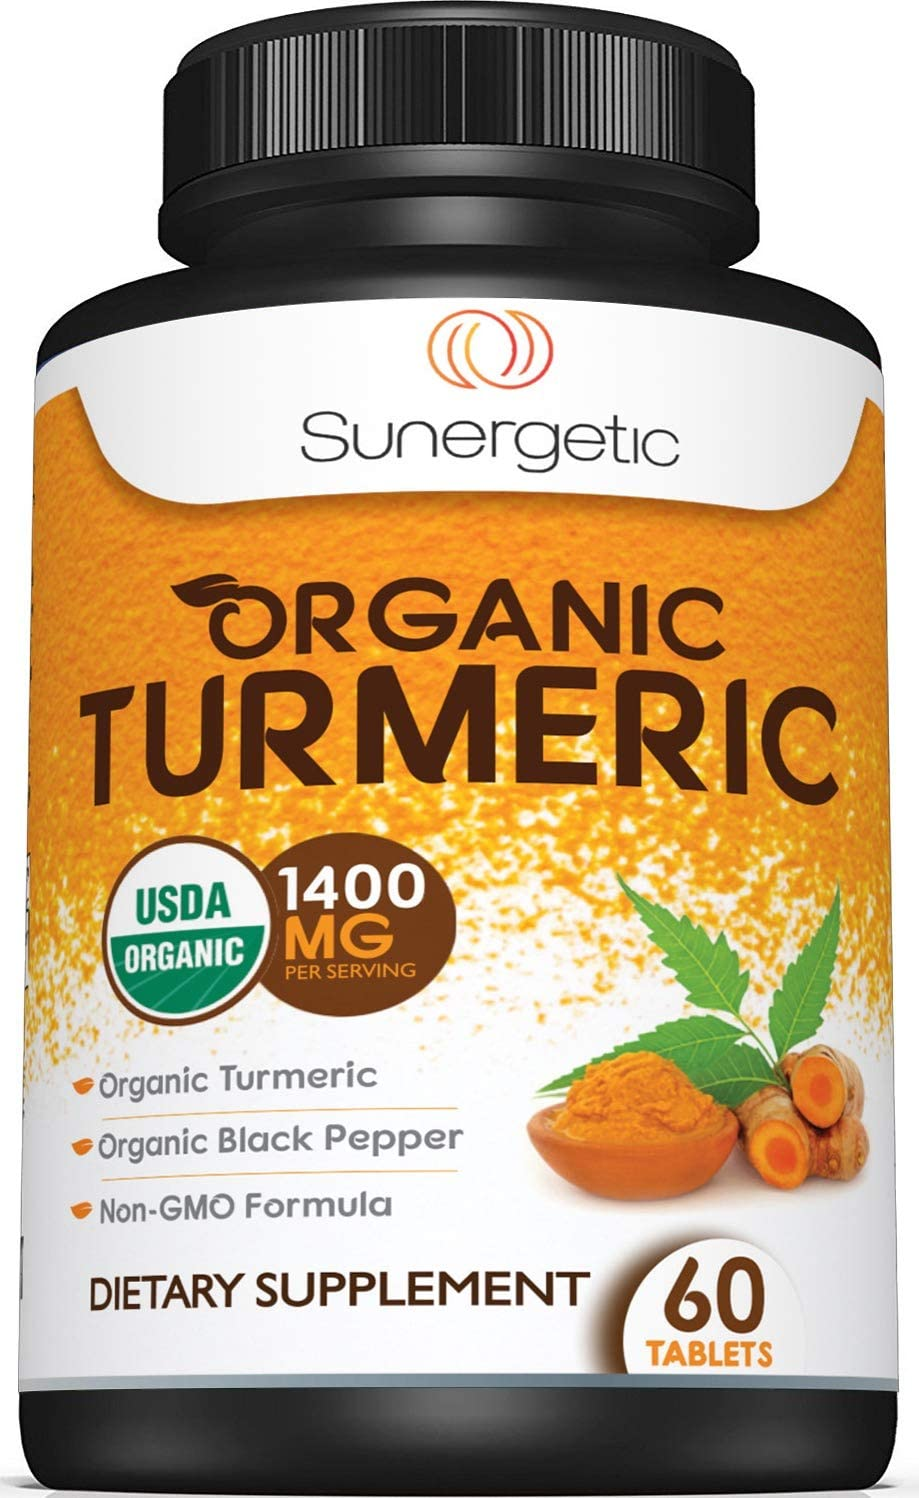 USDA Certified Organic Turmeric Supplement Includes Organic Turmeric Organic Black Pepper 1,400mg of Turmeric per Serving 60 Turmeric Tablet